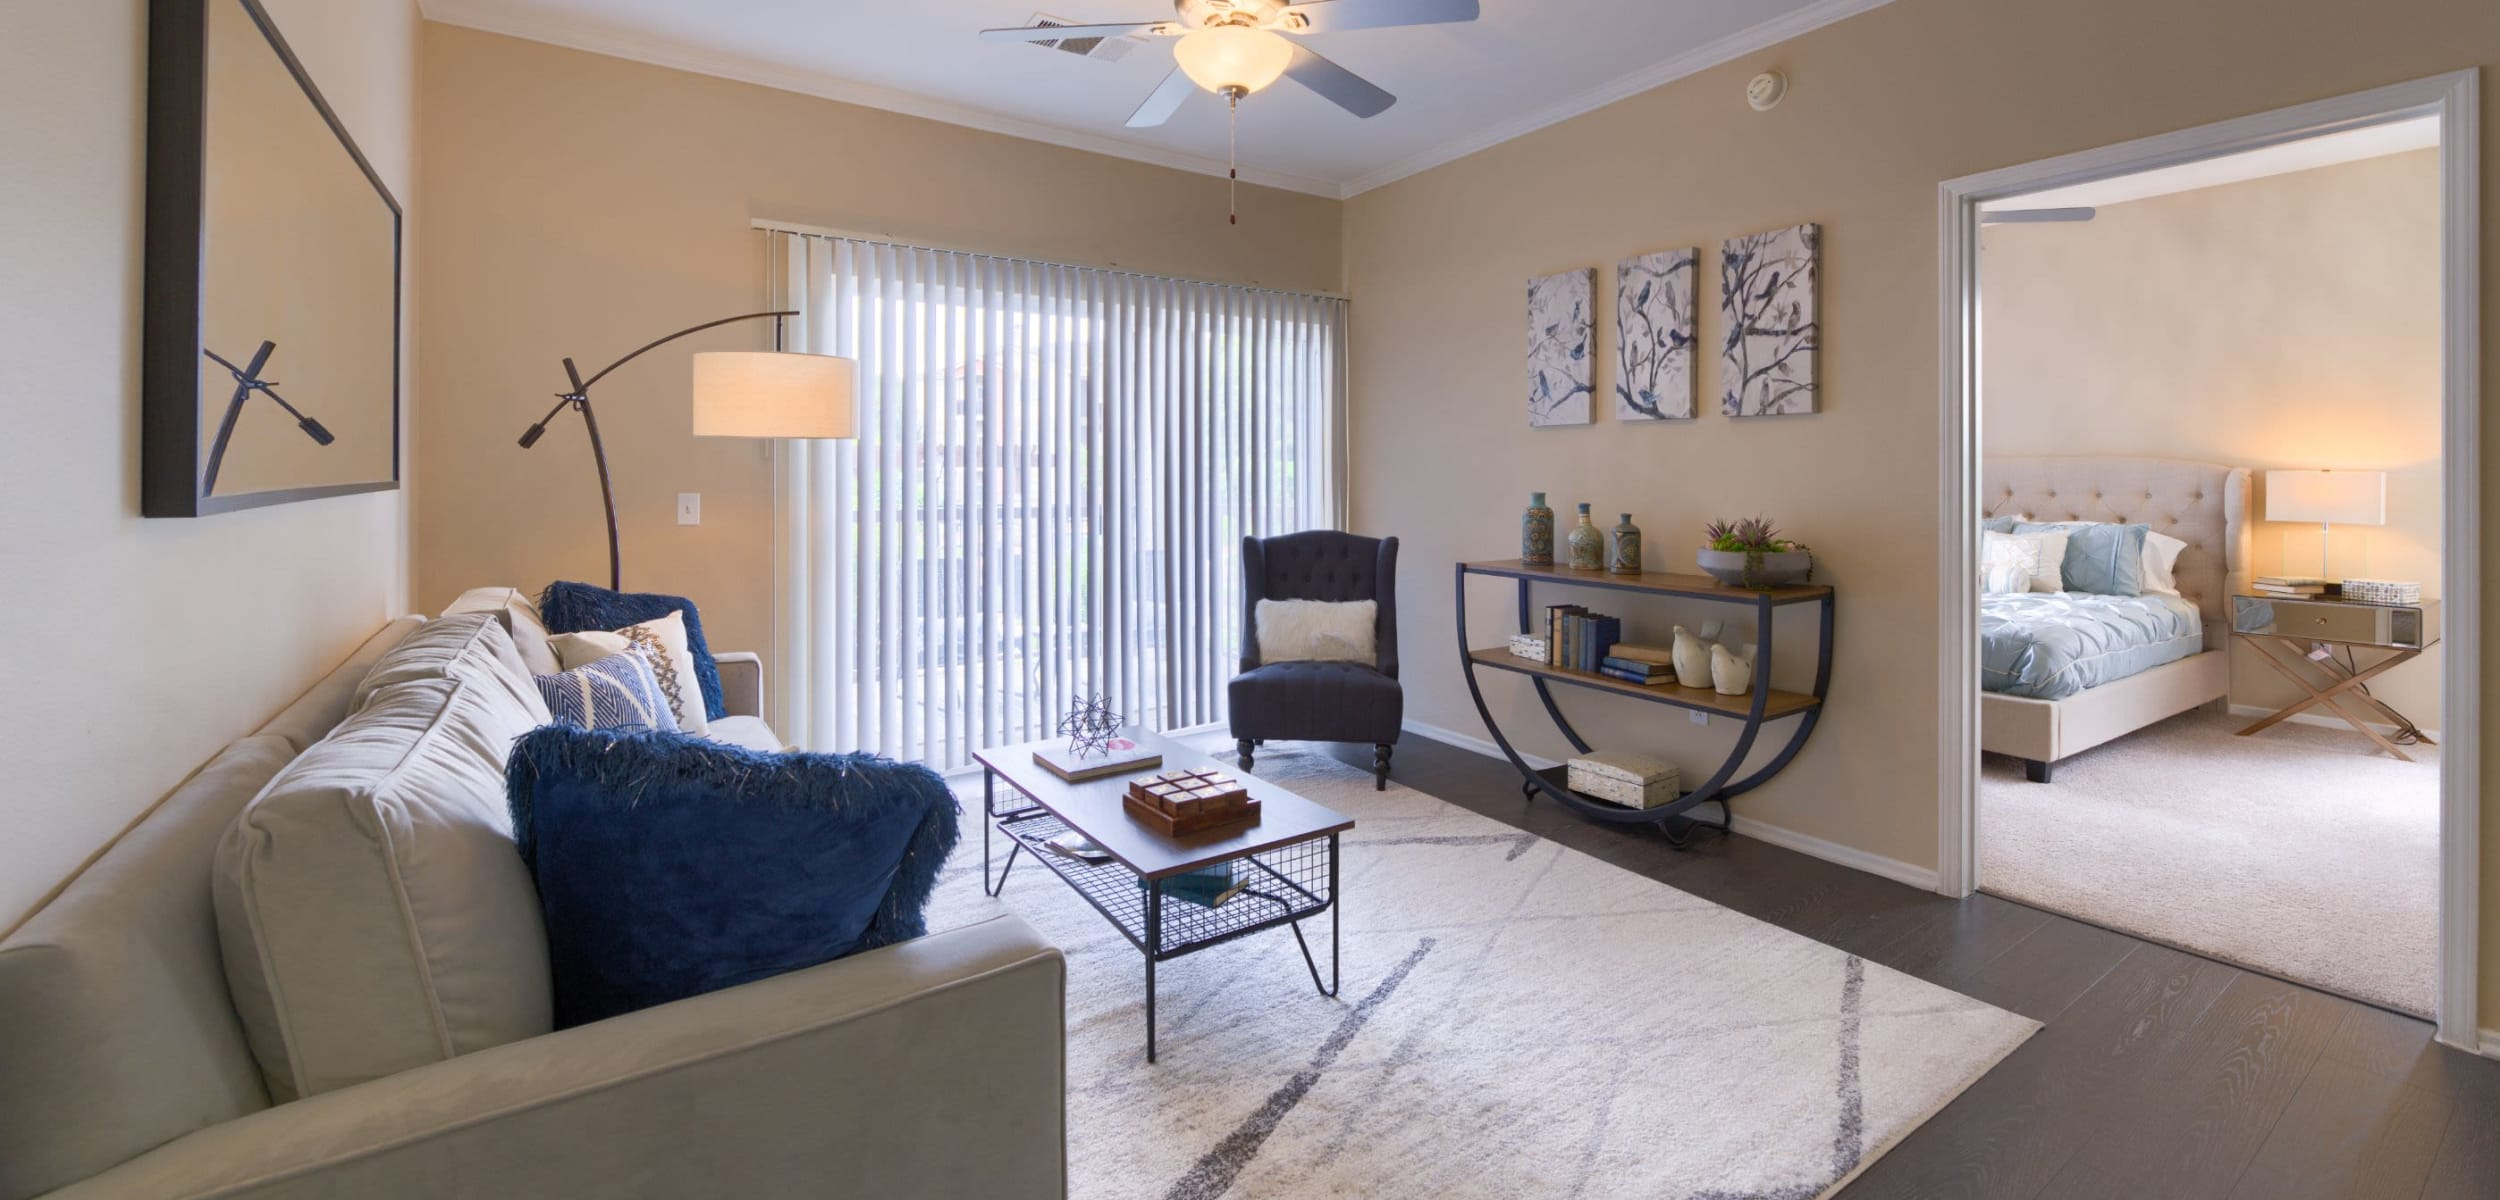 Spacious living room with wood style floors at Whisper Creek Apartment Homes in Lakewood, Colorado